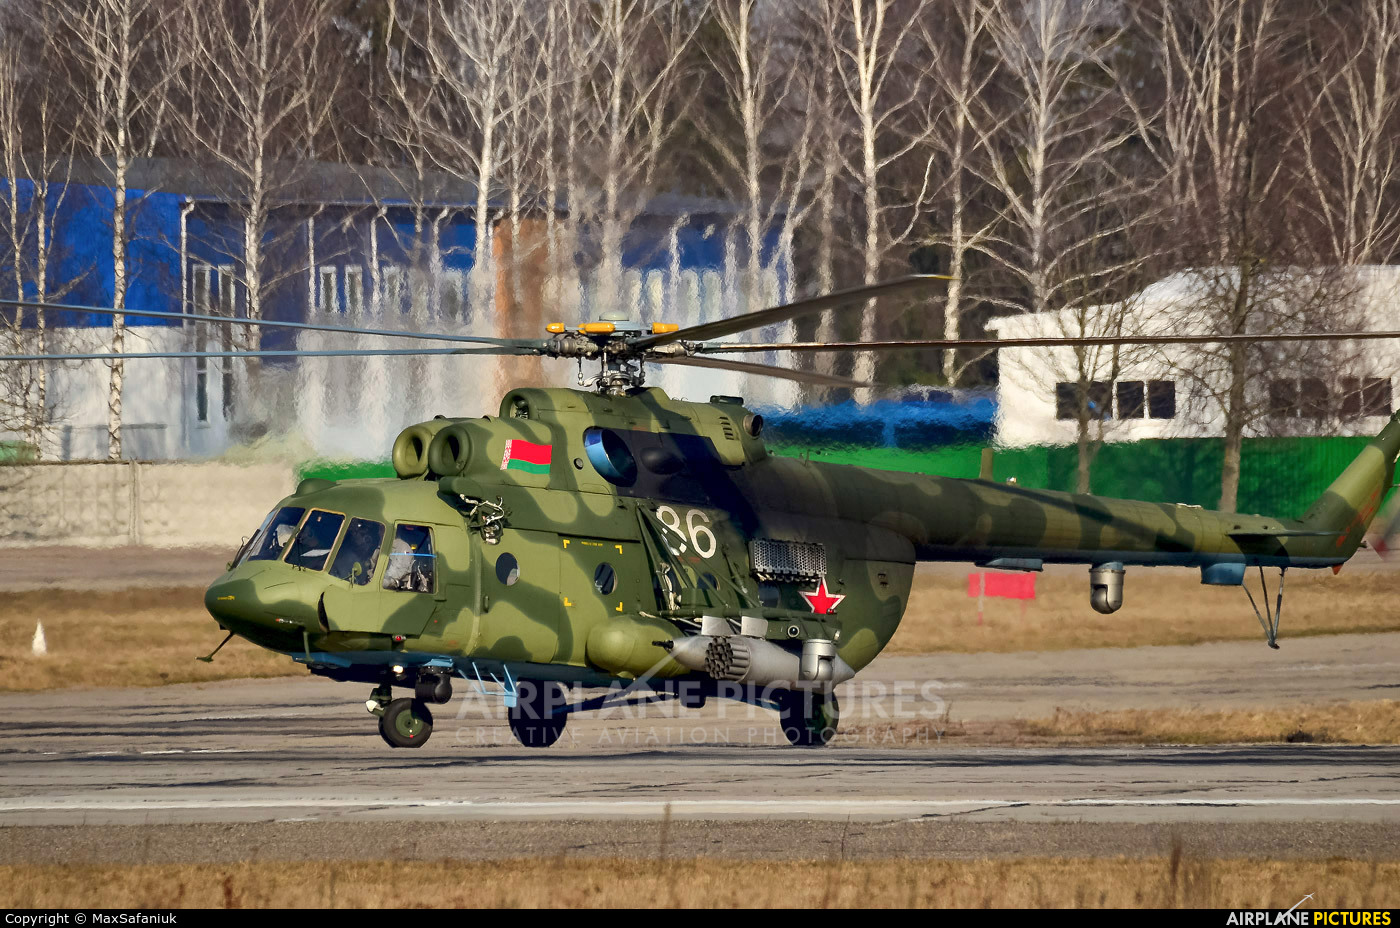 Belarus - Air Force 86 WHITE aircraft at Undisclosed Location